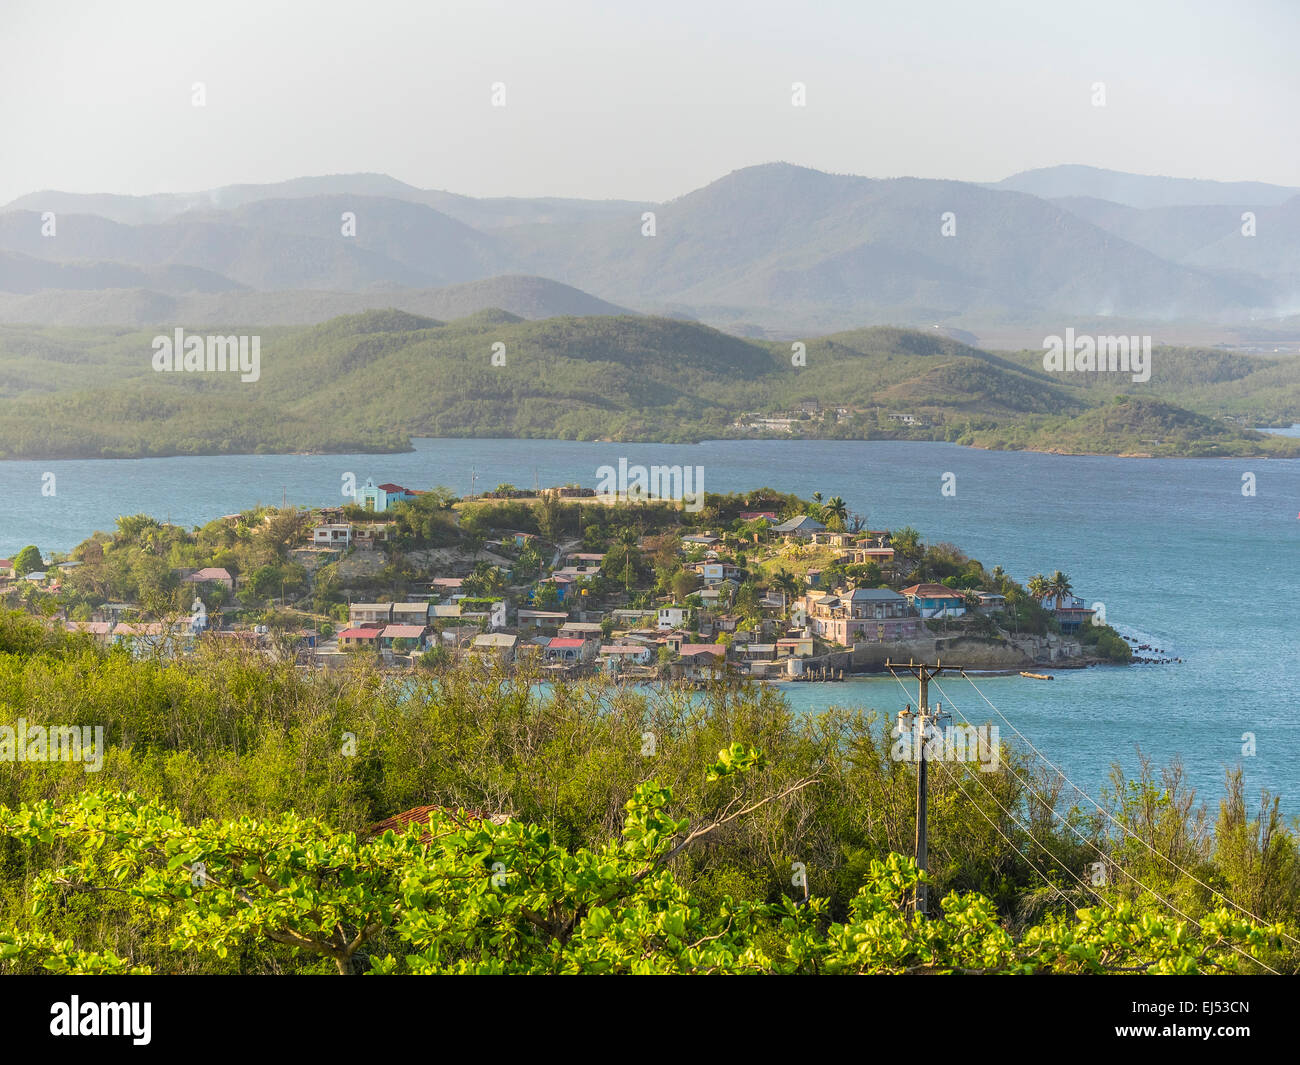 An overall view of tiny Cayo Granma Island by Santiago de Cuba from a viewpoint on the mainland above the island. - Stock Image